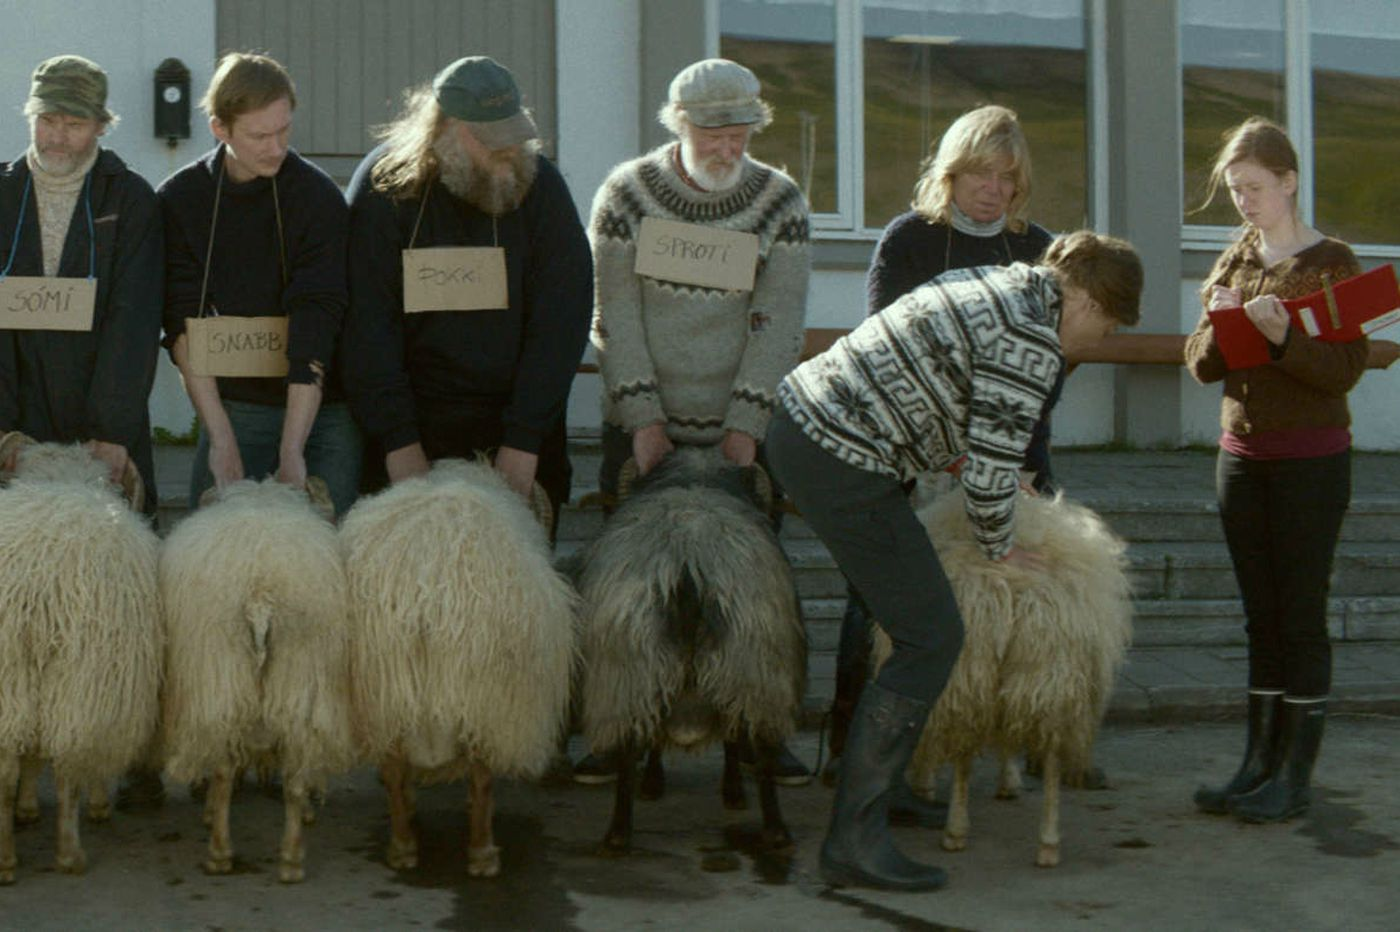 'Rams': From Iceland, a funny and affecting yarn